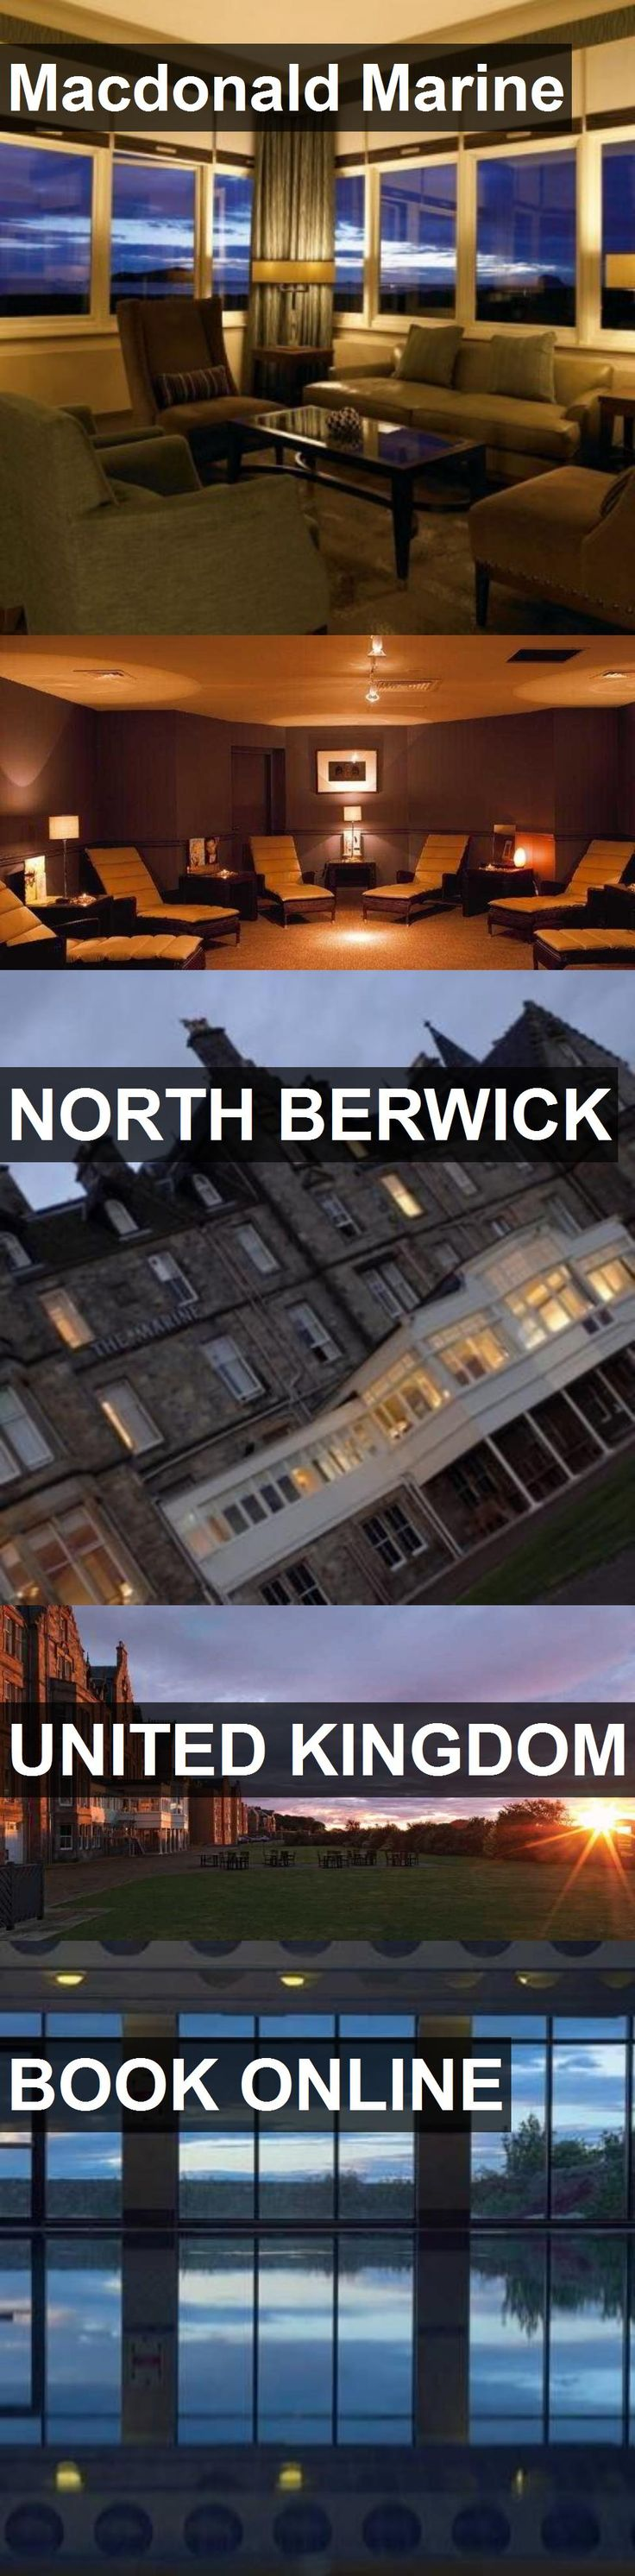 Hotel Macdonald Marine in North Berwick, United Kingdom. For more information, photos, reviews and best prices please follow the link. #UnitedKingdom #NorthBerwick #travel #vacation #hotel